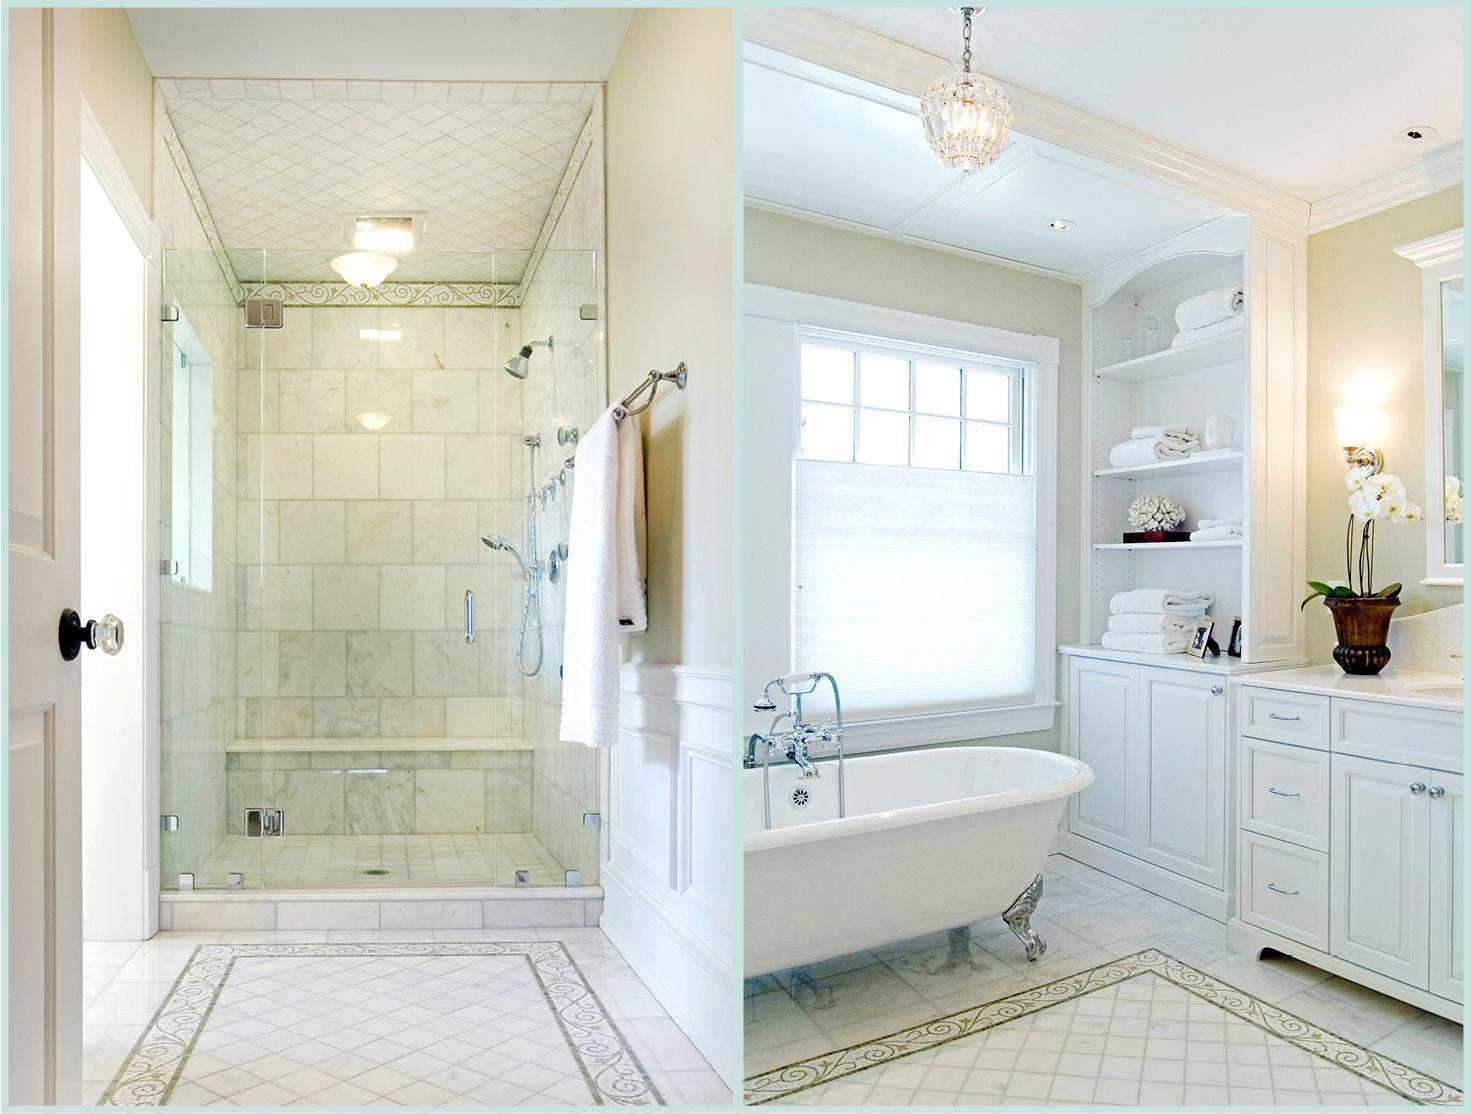 Bright Colored Bathroom Accessories Brash Finish Faucet Wall Intended For Sloped Ceiling Pendant Lights (View 5 of 15)